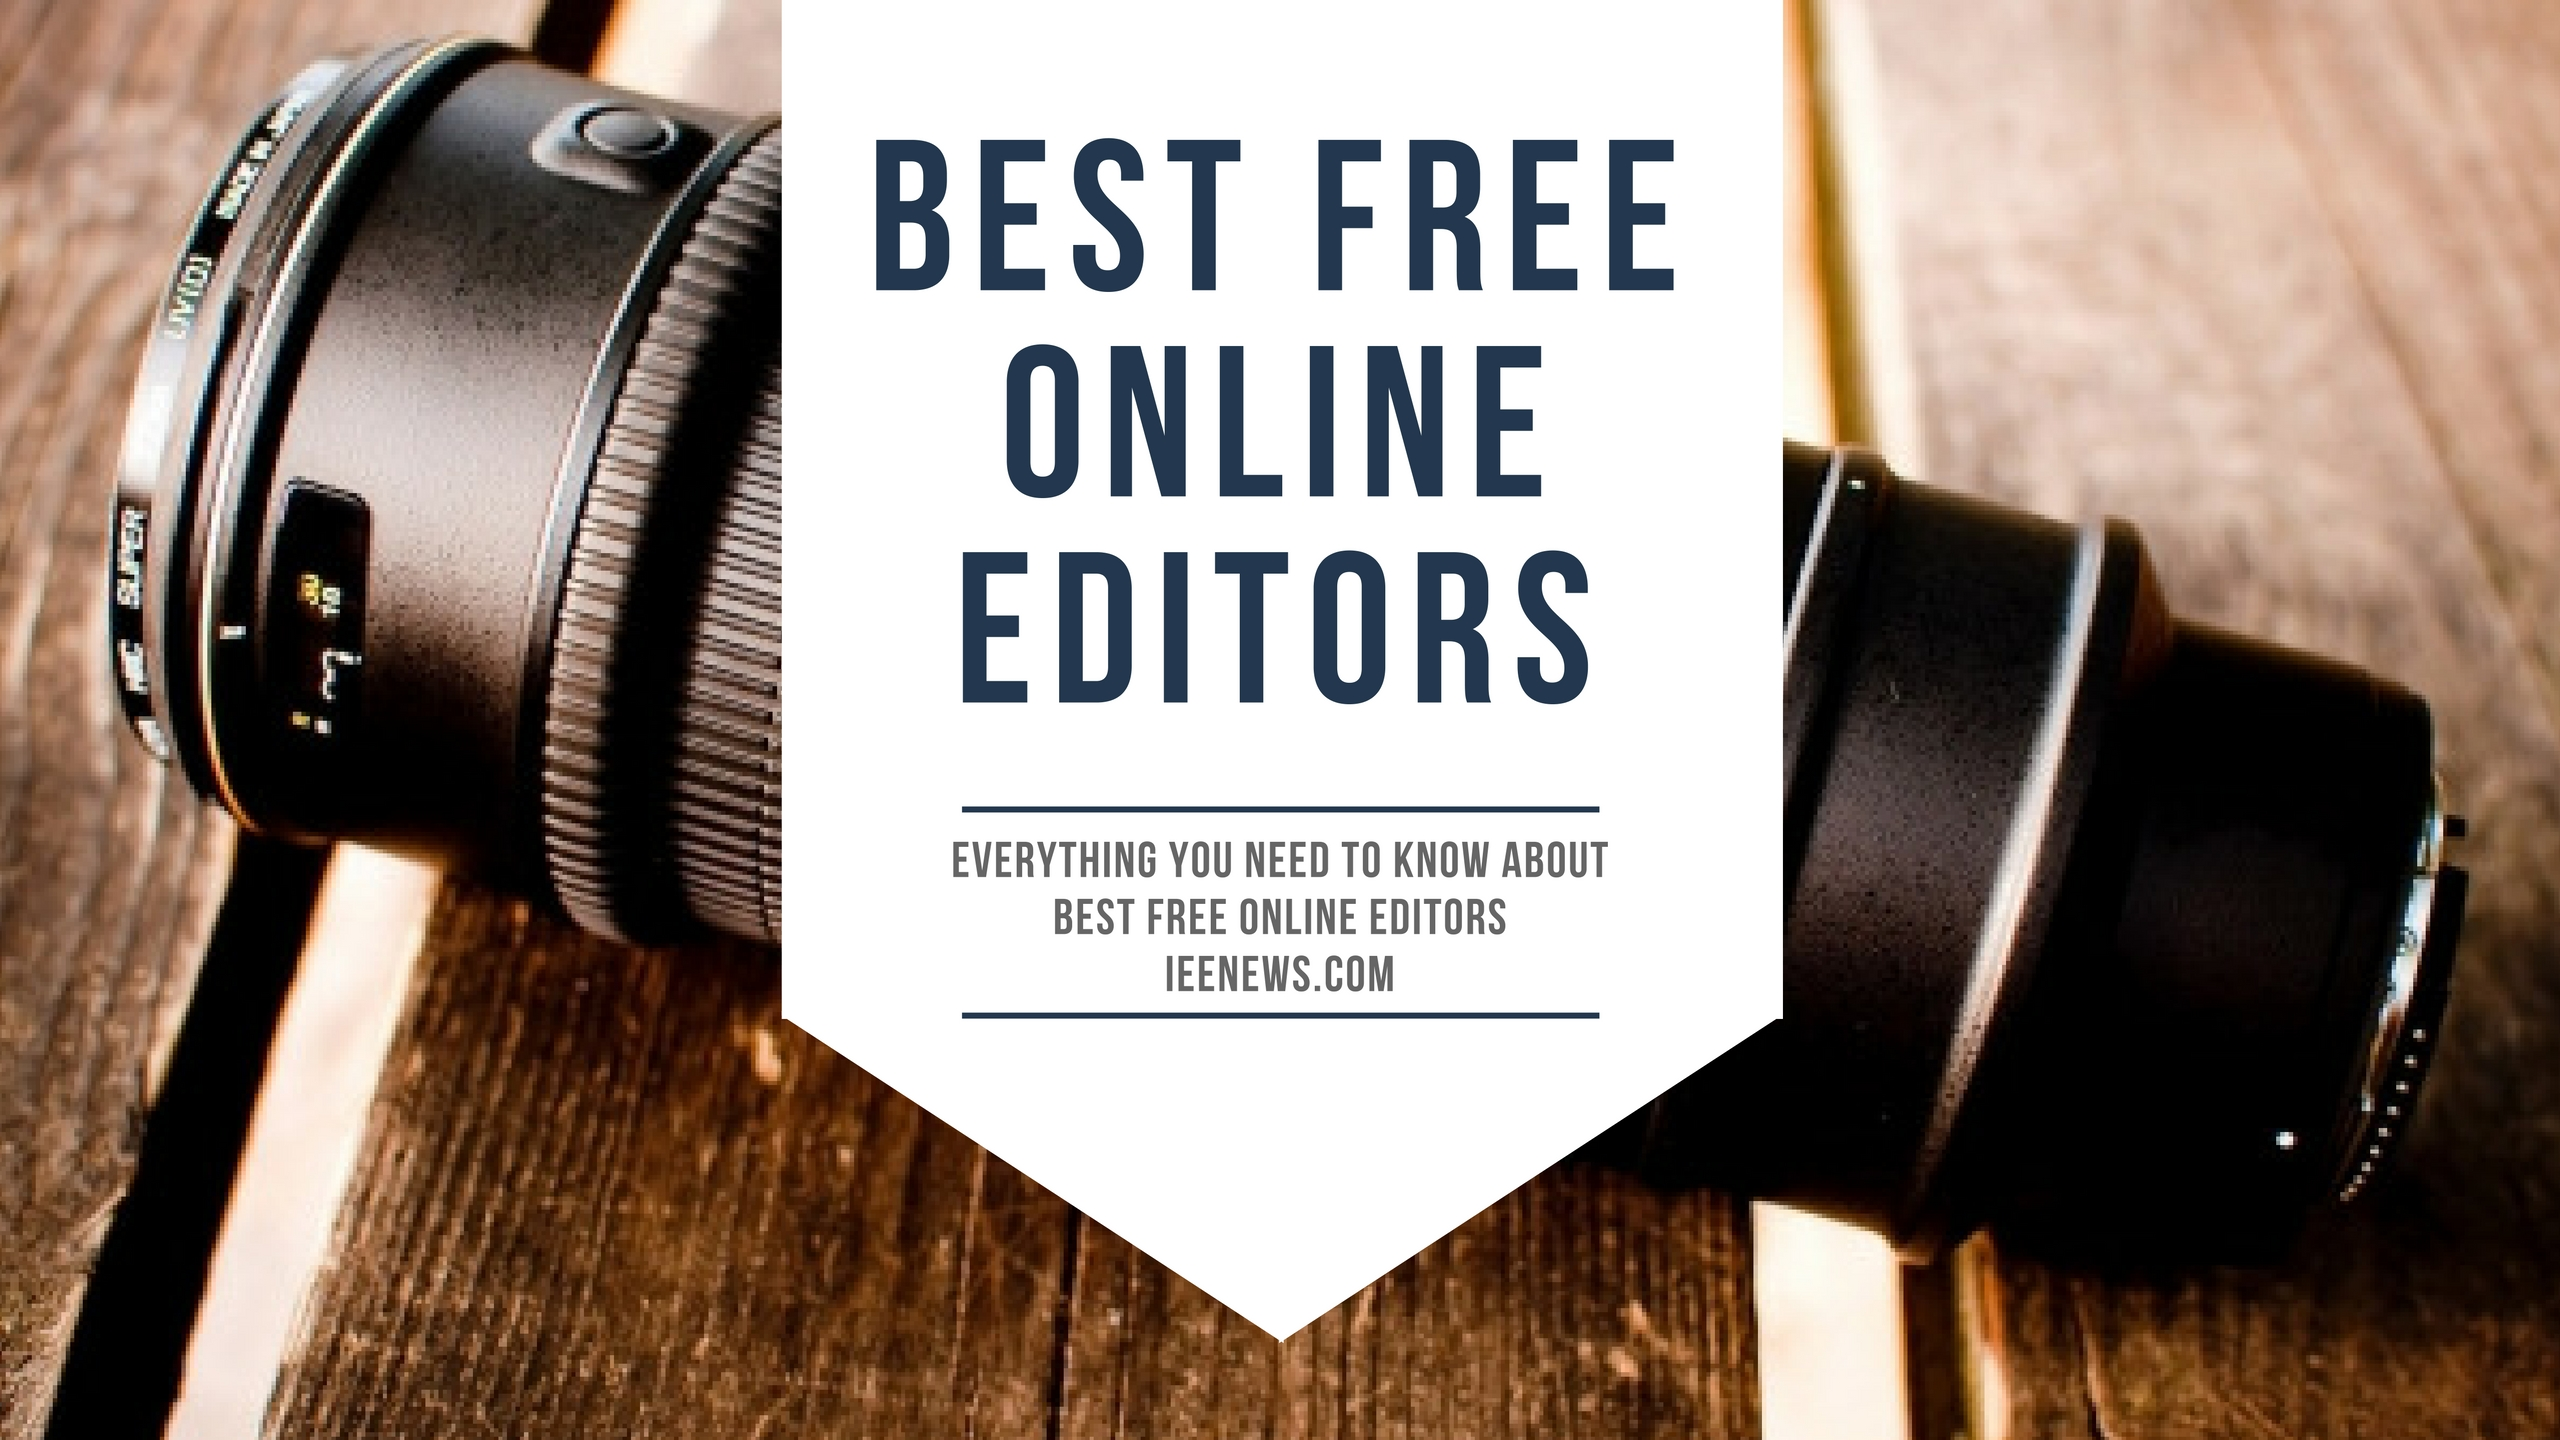 Tools For Online Video Editing: Best free online video editor ...